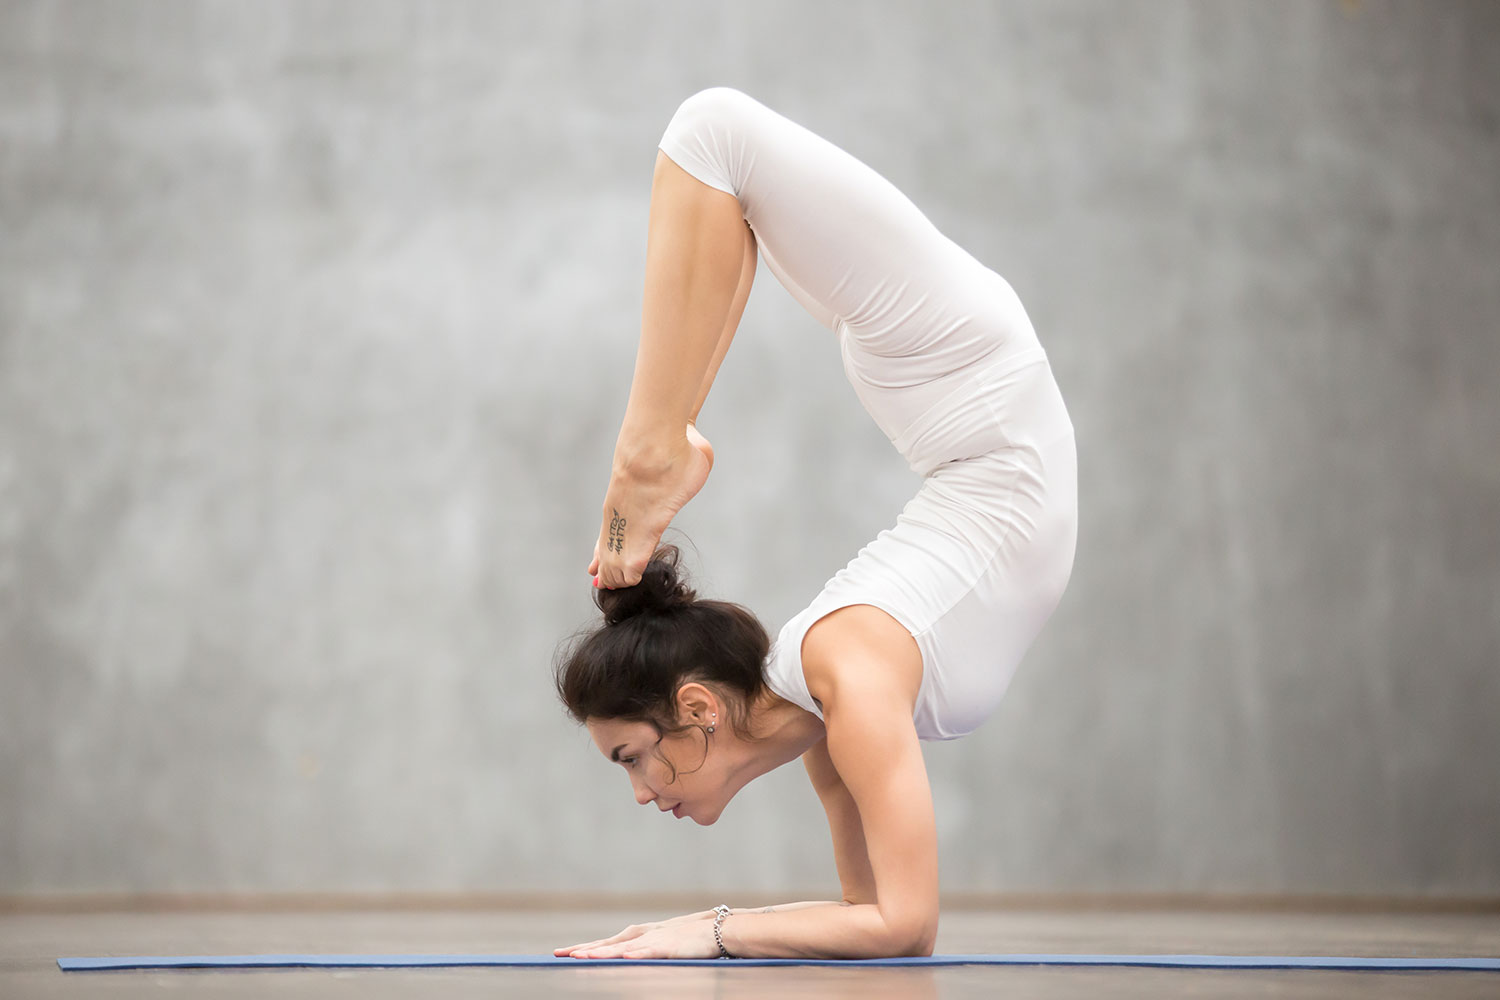 15 Crazy Yoga Poses You Wish You Could Strike